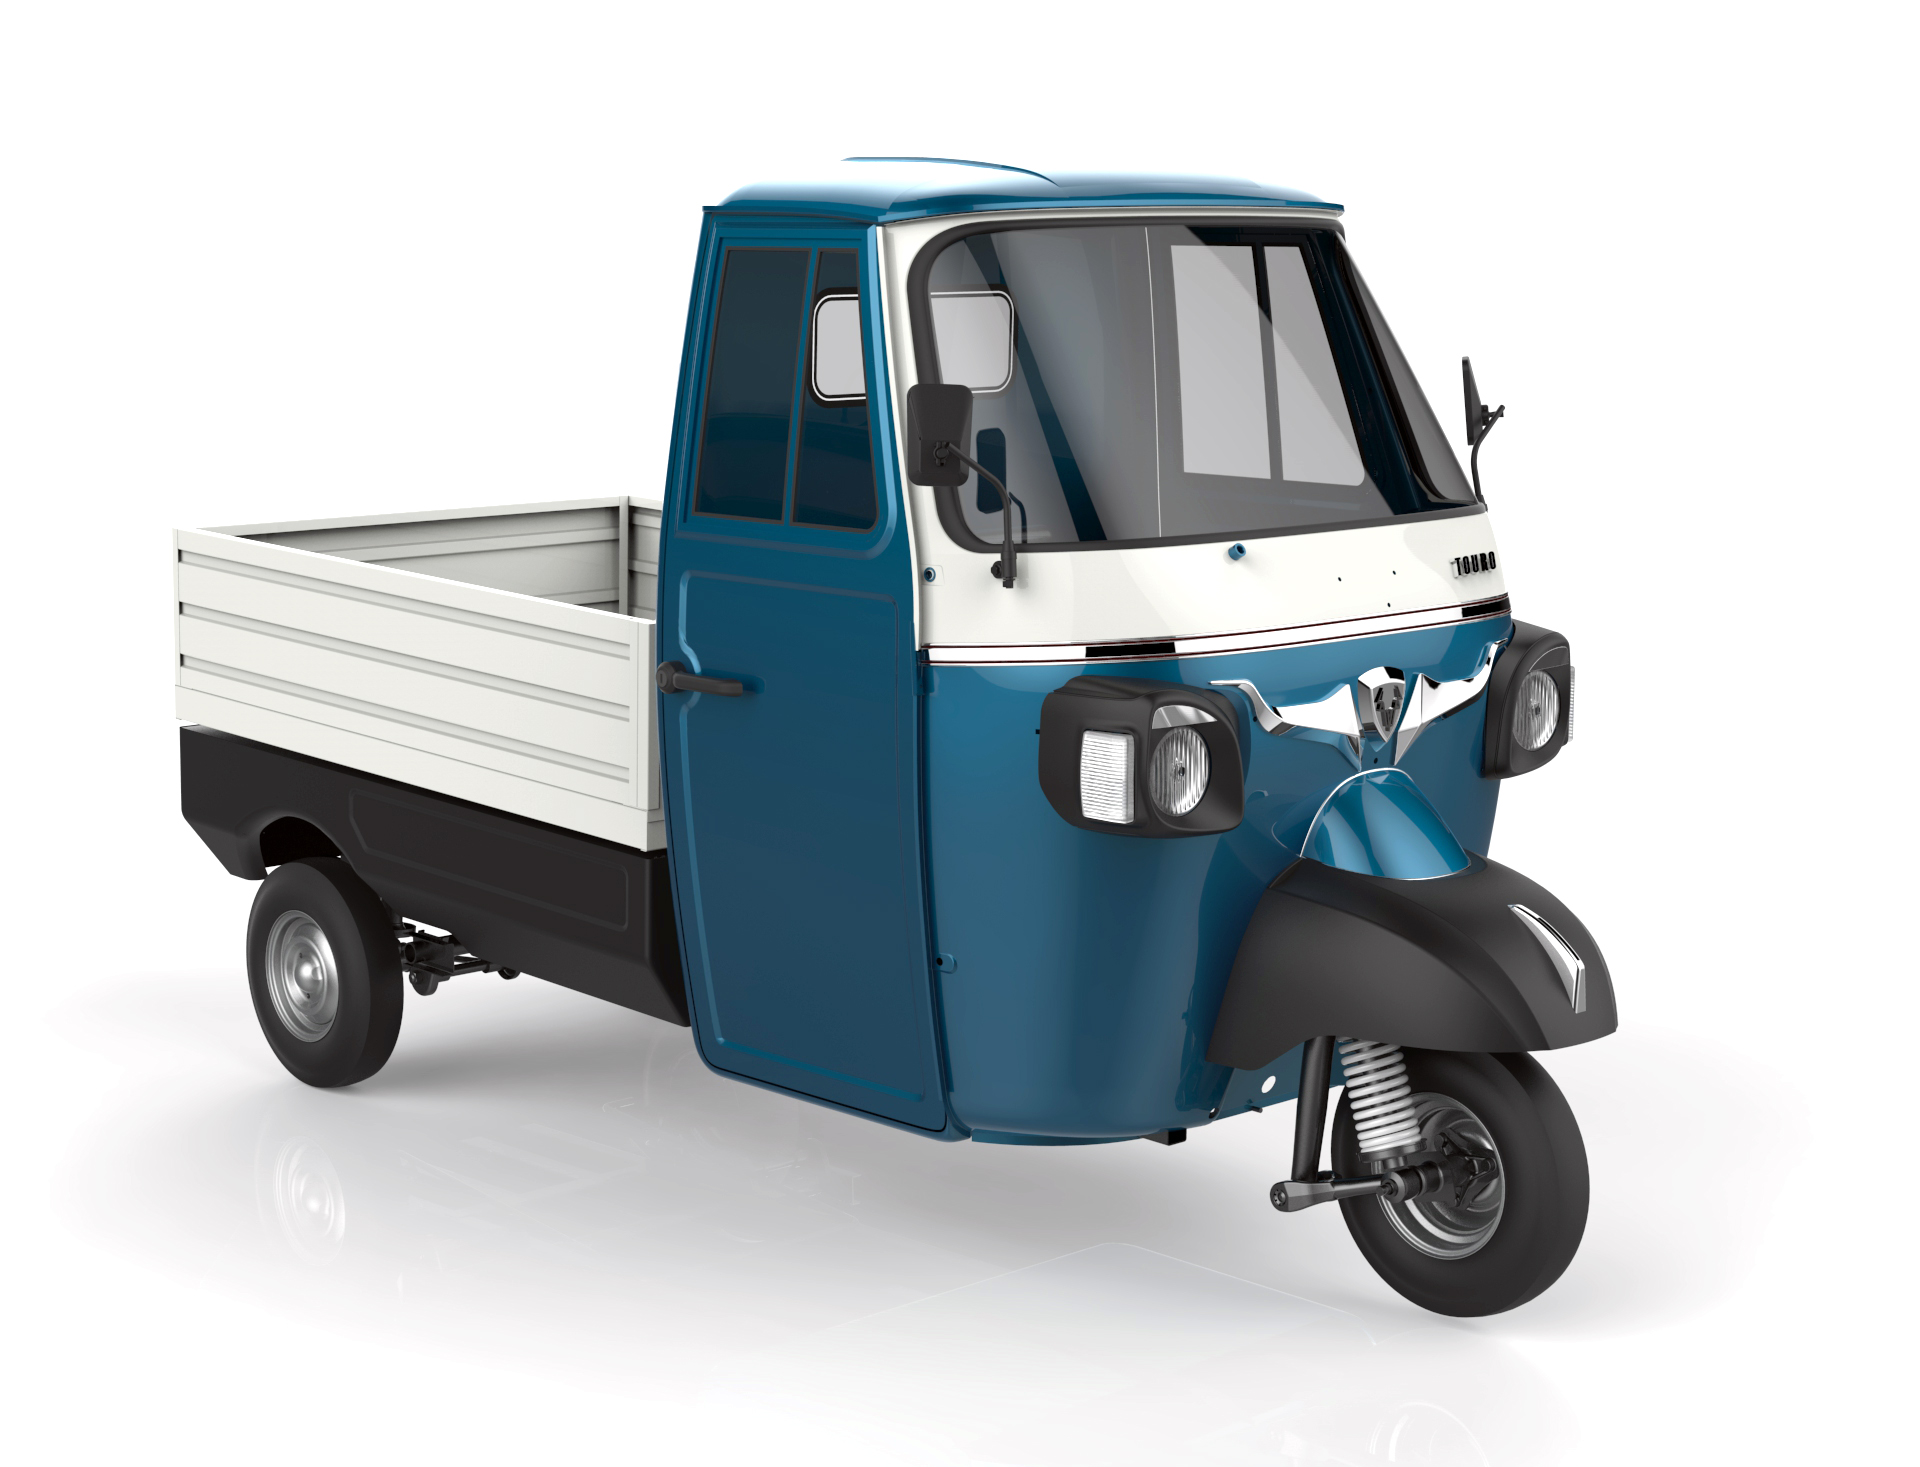 Etrio ventures into new electric three-wheeler space with the launch of Touro Max and Mini